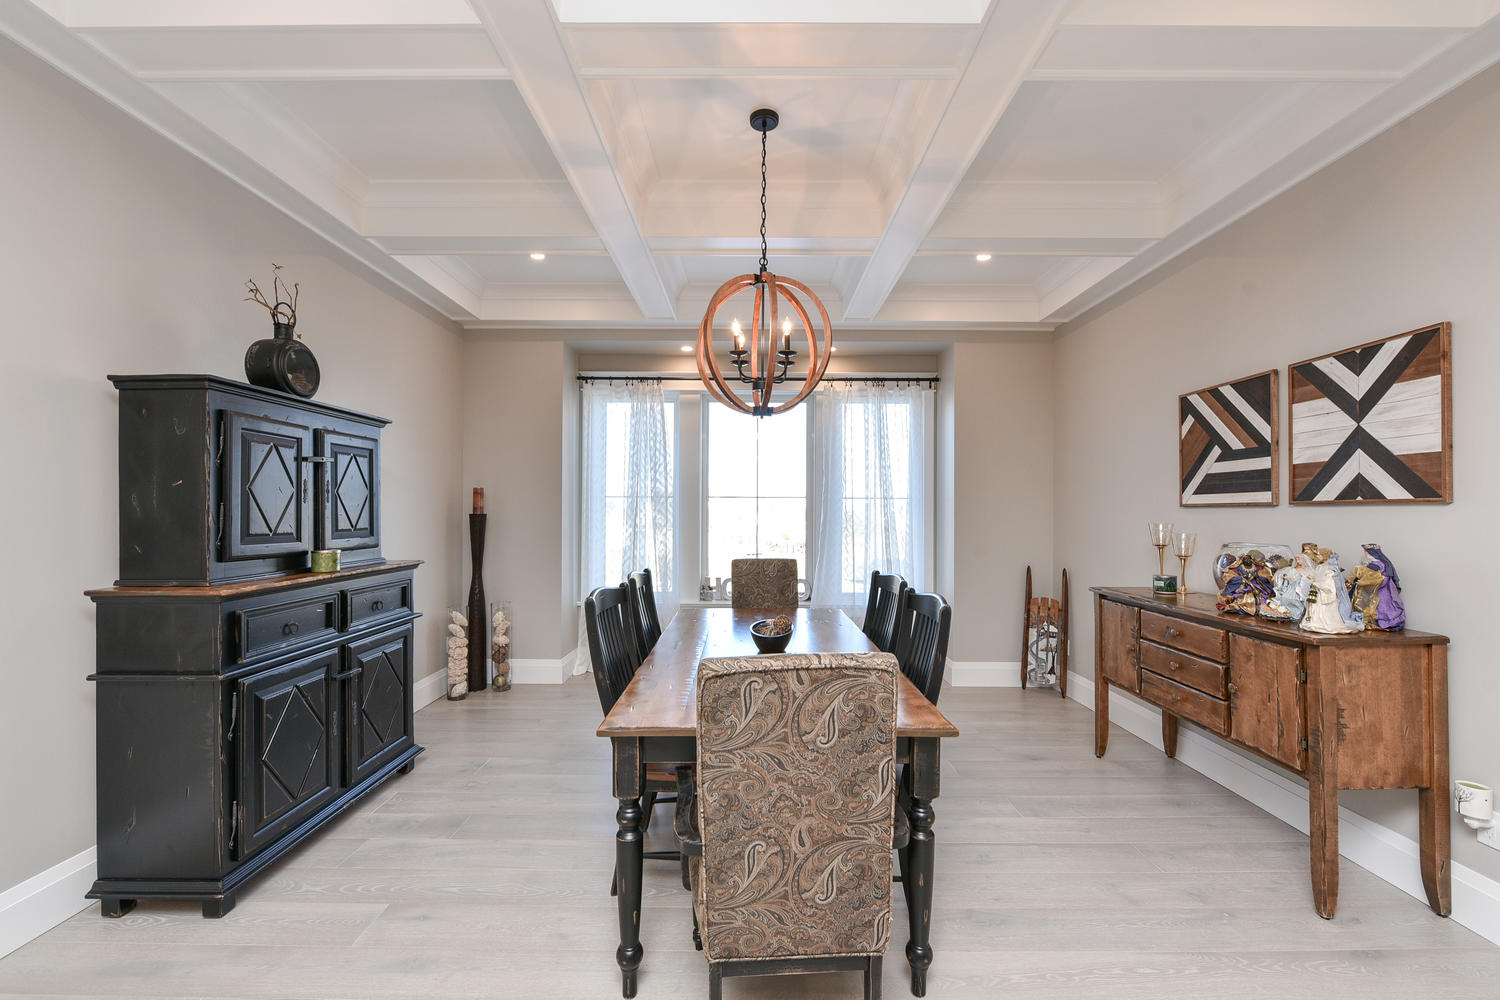 Dining Room - Eclectic Country Project In Renfrew